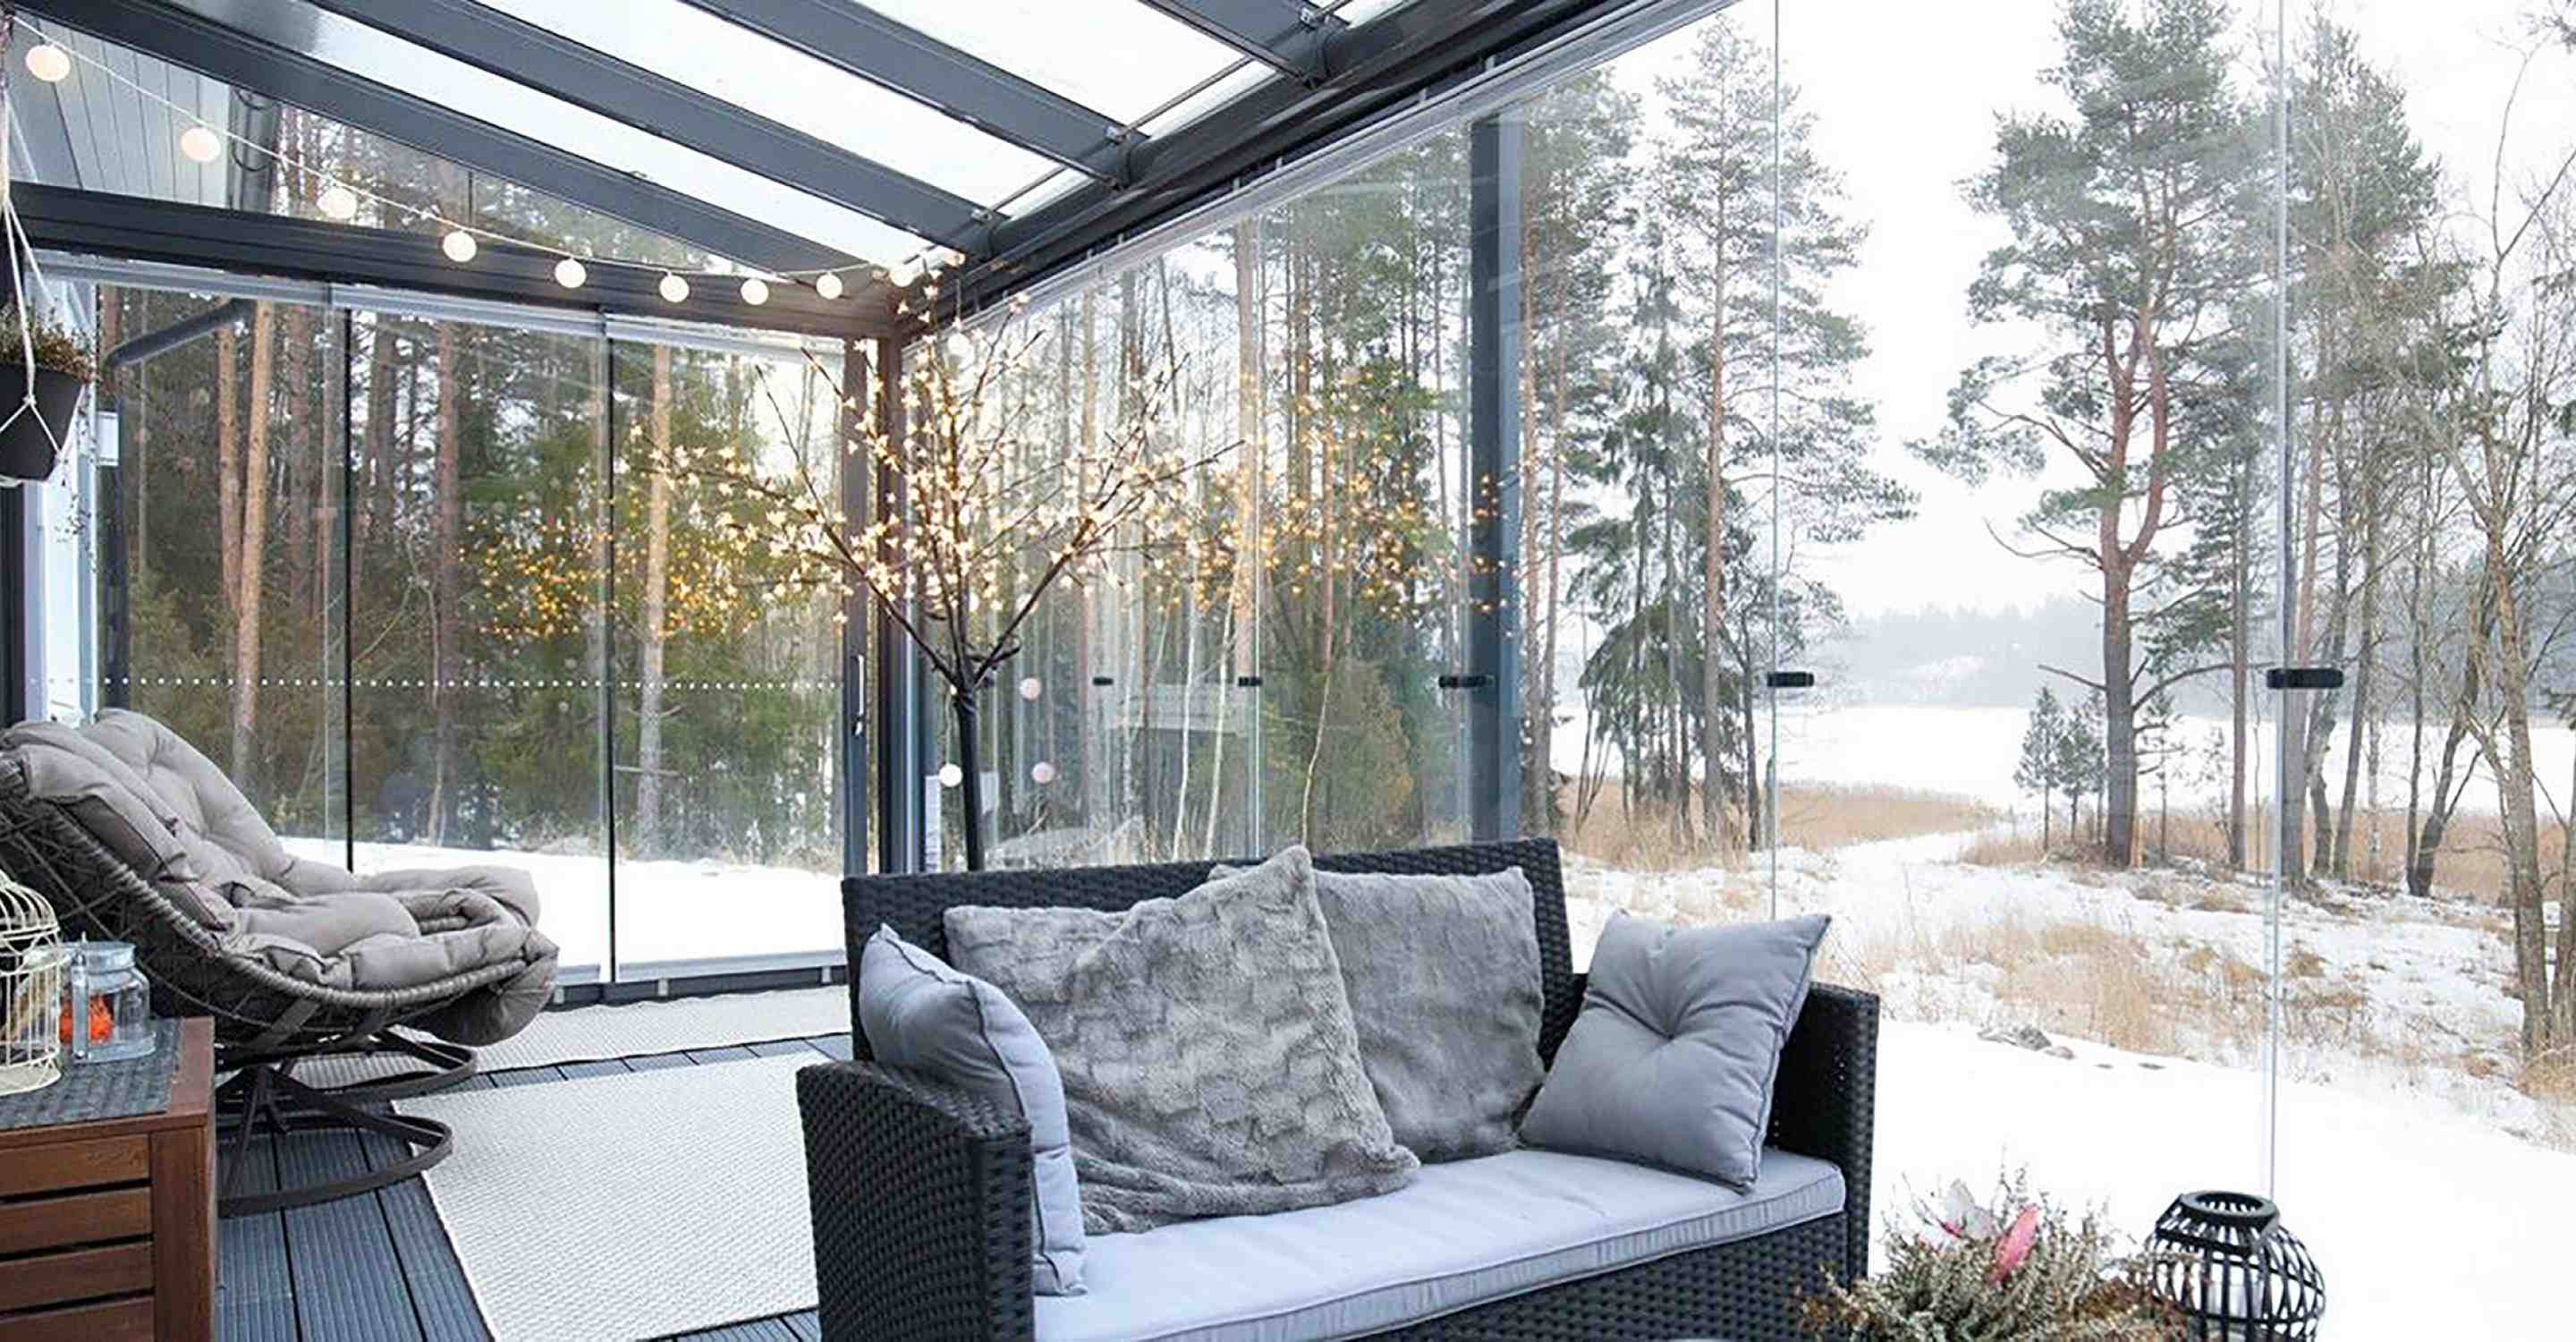 sunroom, sunroom enclosure, , retractable glass walls, sliding glass, sliding glass wall, sliding glass walls, glass enclosure, glass enclosures, glass walls,, retractable walls, tempered glass wall, tempered glass walls, frameless retractable glass,